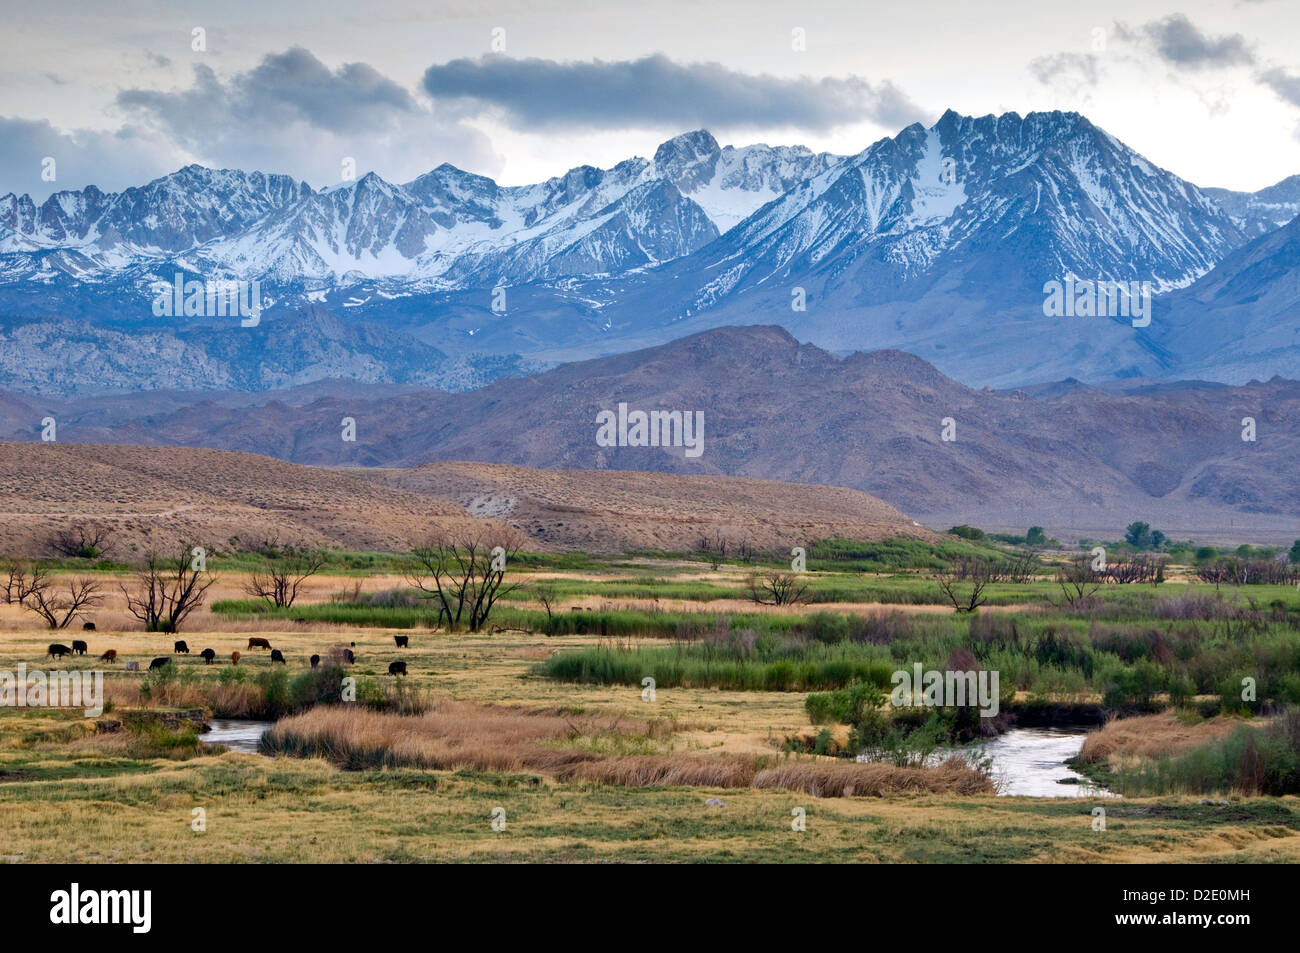 Sierra Nevada Ca: The Eastern Sierra Nevada Mountains Rise Above The Owens